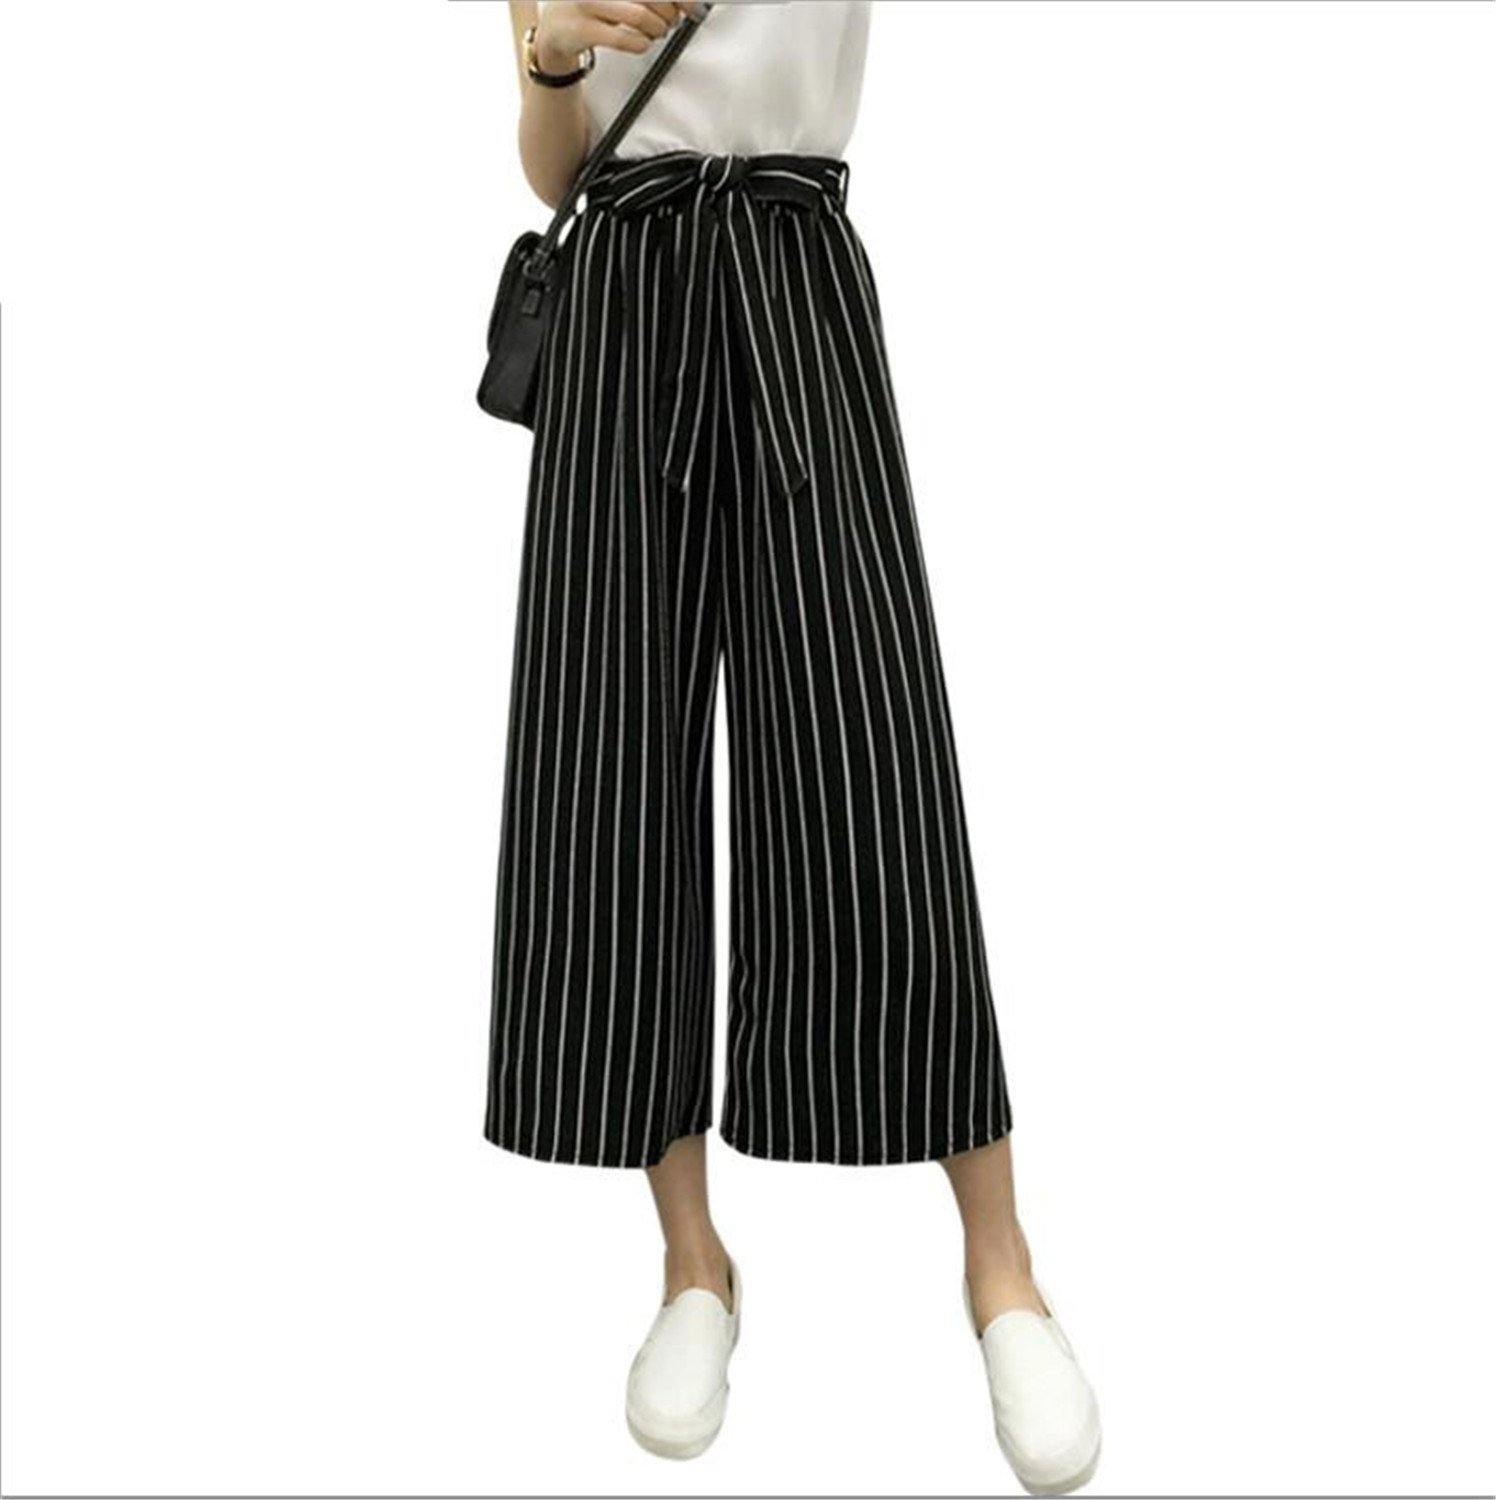 Fashion Summer Hot Selling Ladies Office Trousers Loose Wide Leg Pants Woman High Waist OL Casual Office Pants for Women Fine Black Bars M